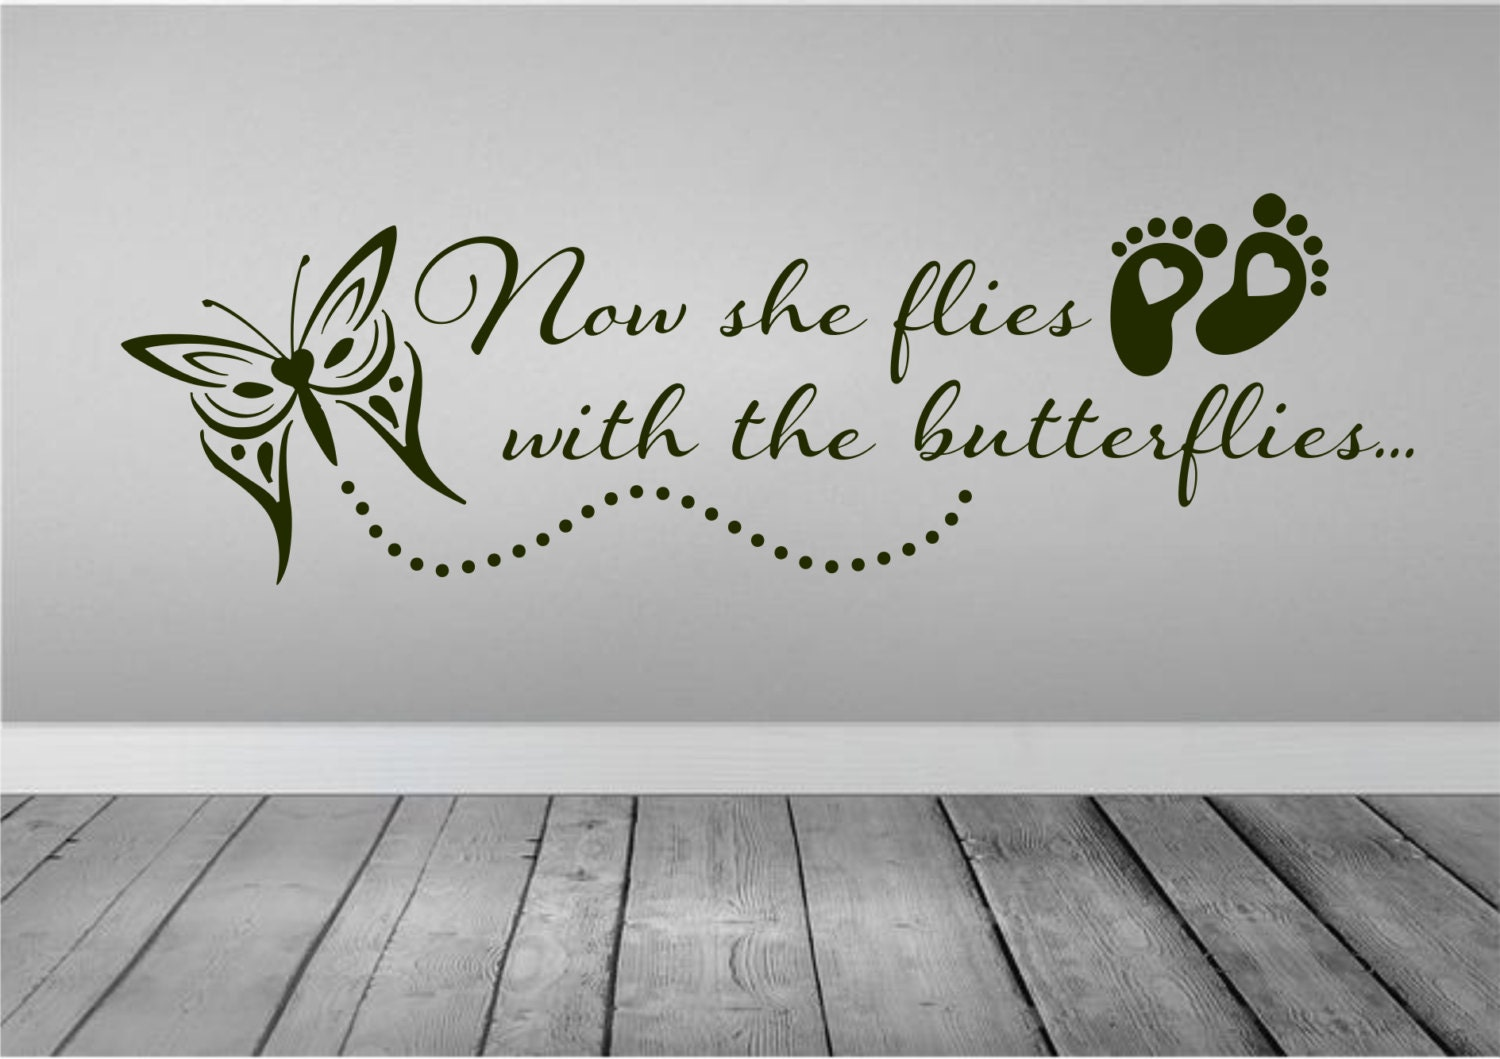 In Loving Memory Quotes Now She Flies With Butterflies Wall Decal Car Decal In